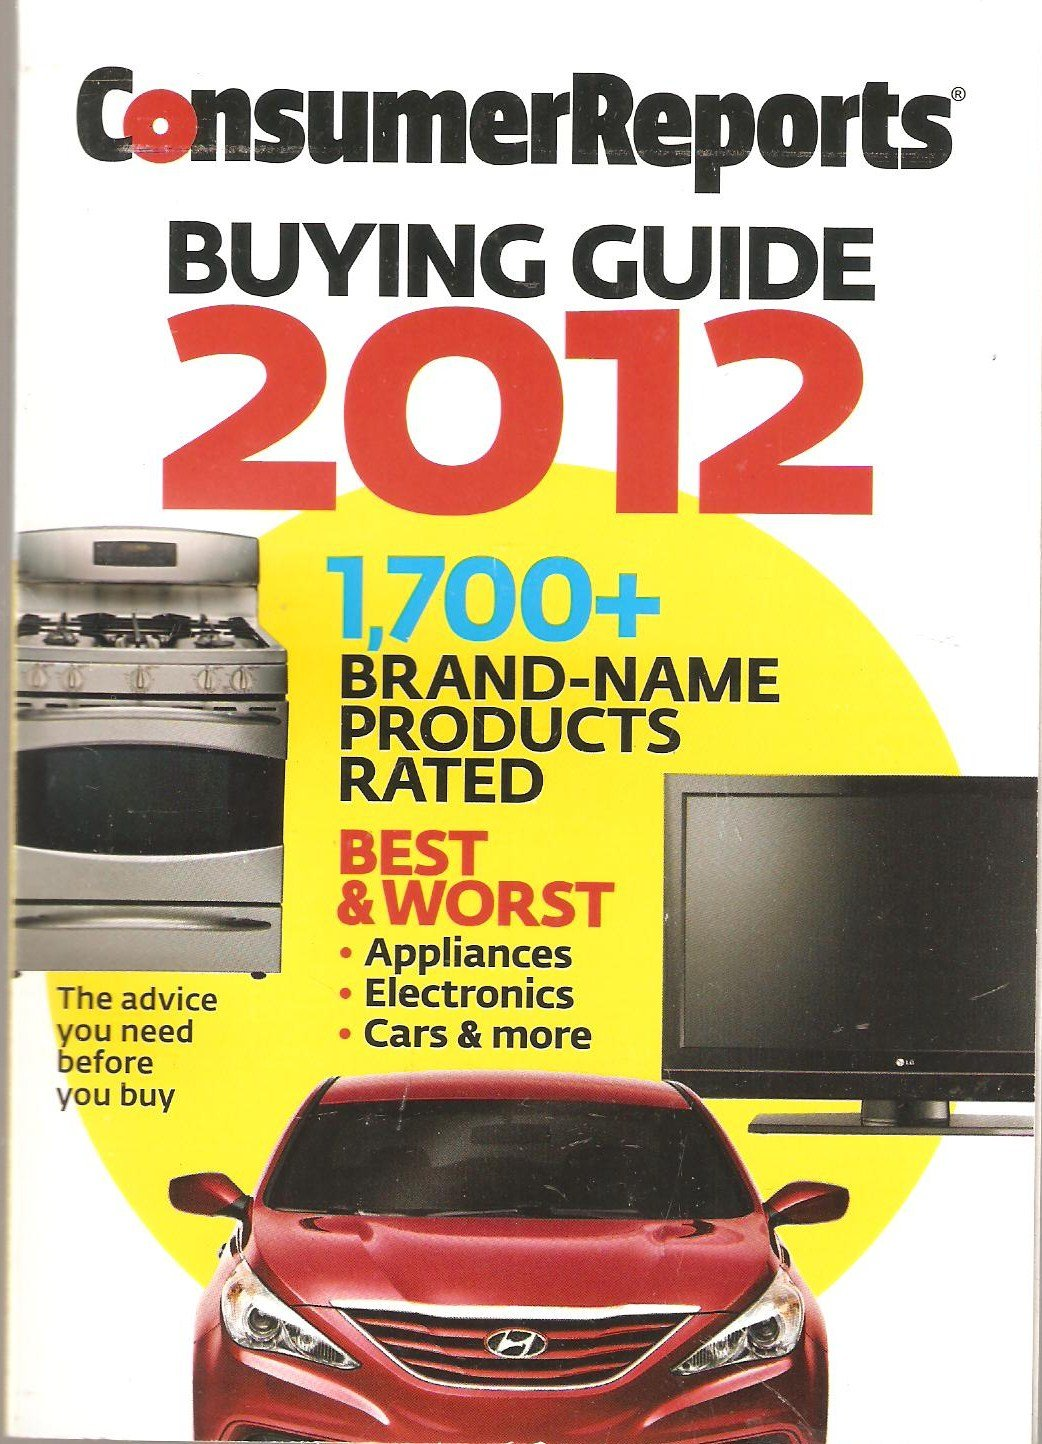 consumer reports buying guide 2012 consumer reports amazon com books rh amazon com Consumer Reports Logo Car Buying Guide 2014